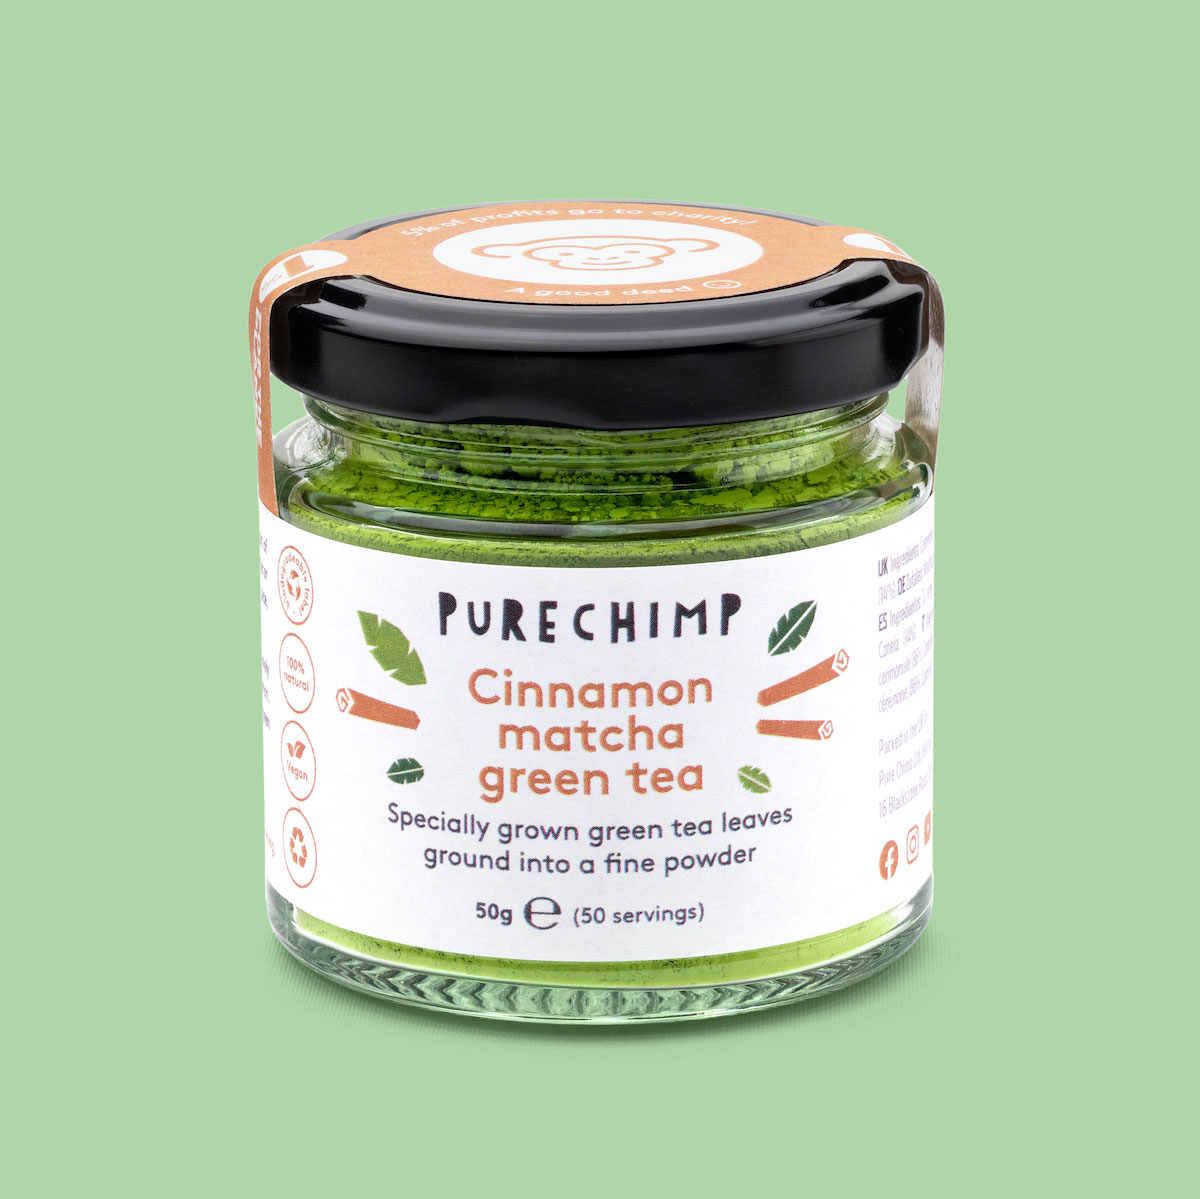 A jar of cinnamon flavoured matcha by PureChimp against a green background.